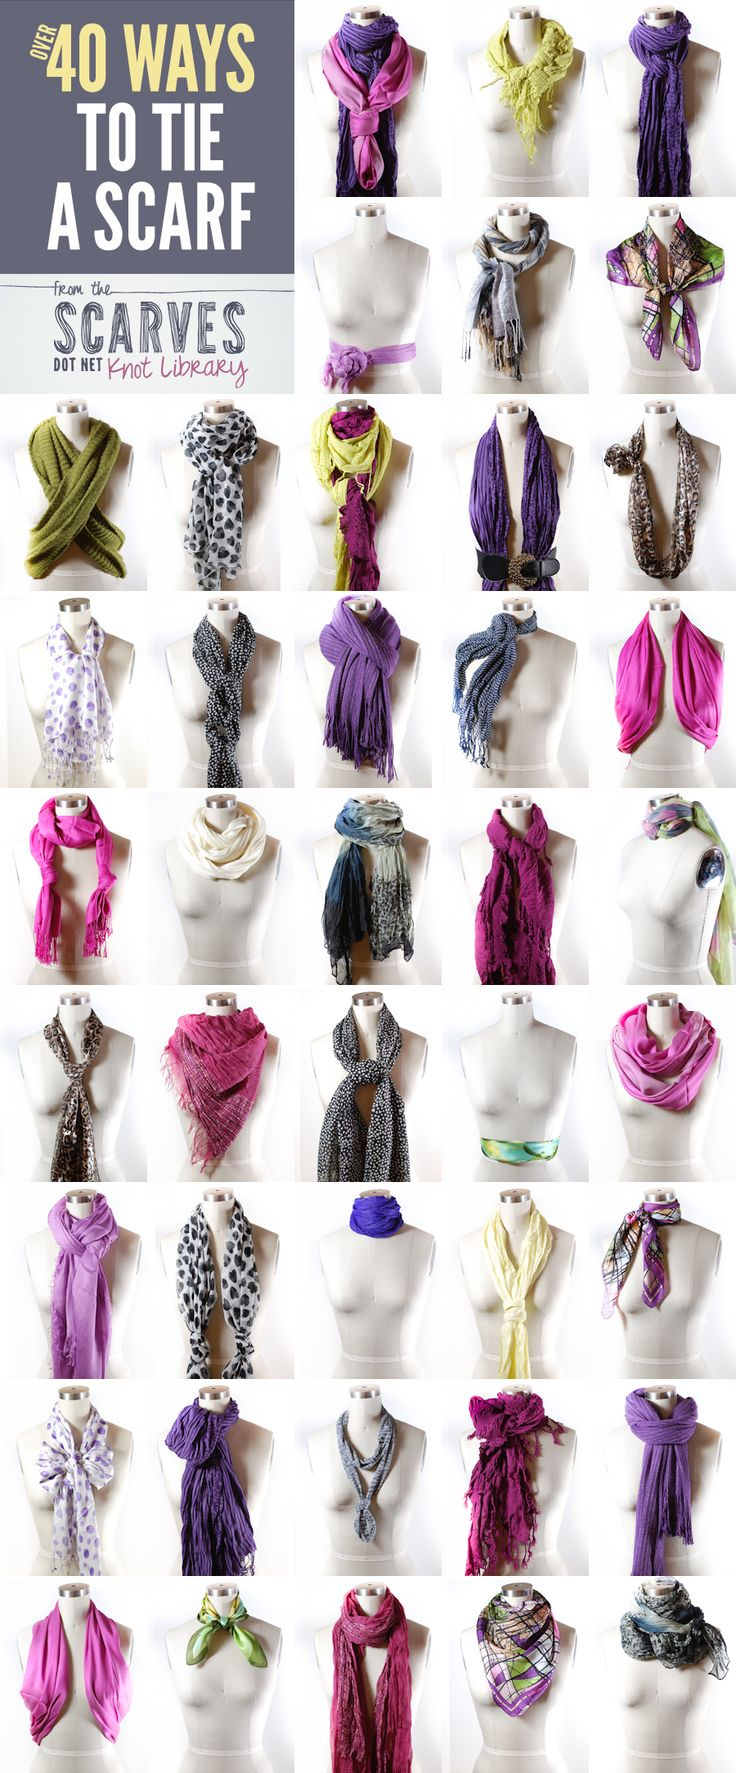 40 Ways to Tie a Scarf: Ties Scarves, Scarfs Knot, Good To Know, Ties A Scarfs, Outfit, Scarfs Ideas, Scarfs Ties, Wear A Scarfs, Wear Scarves